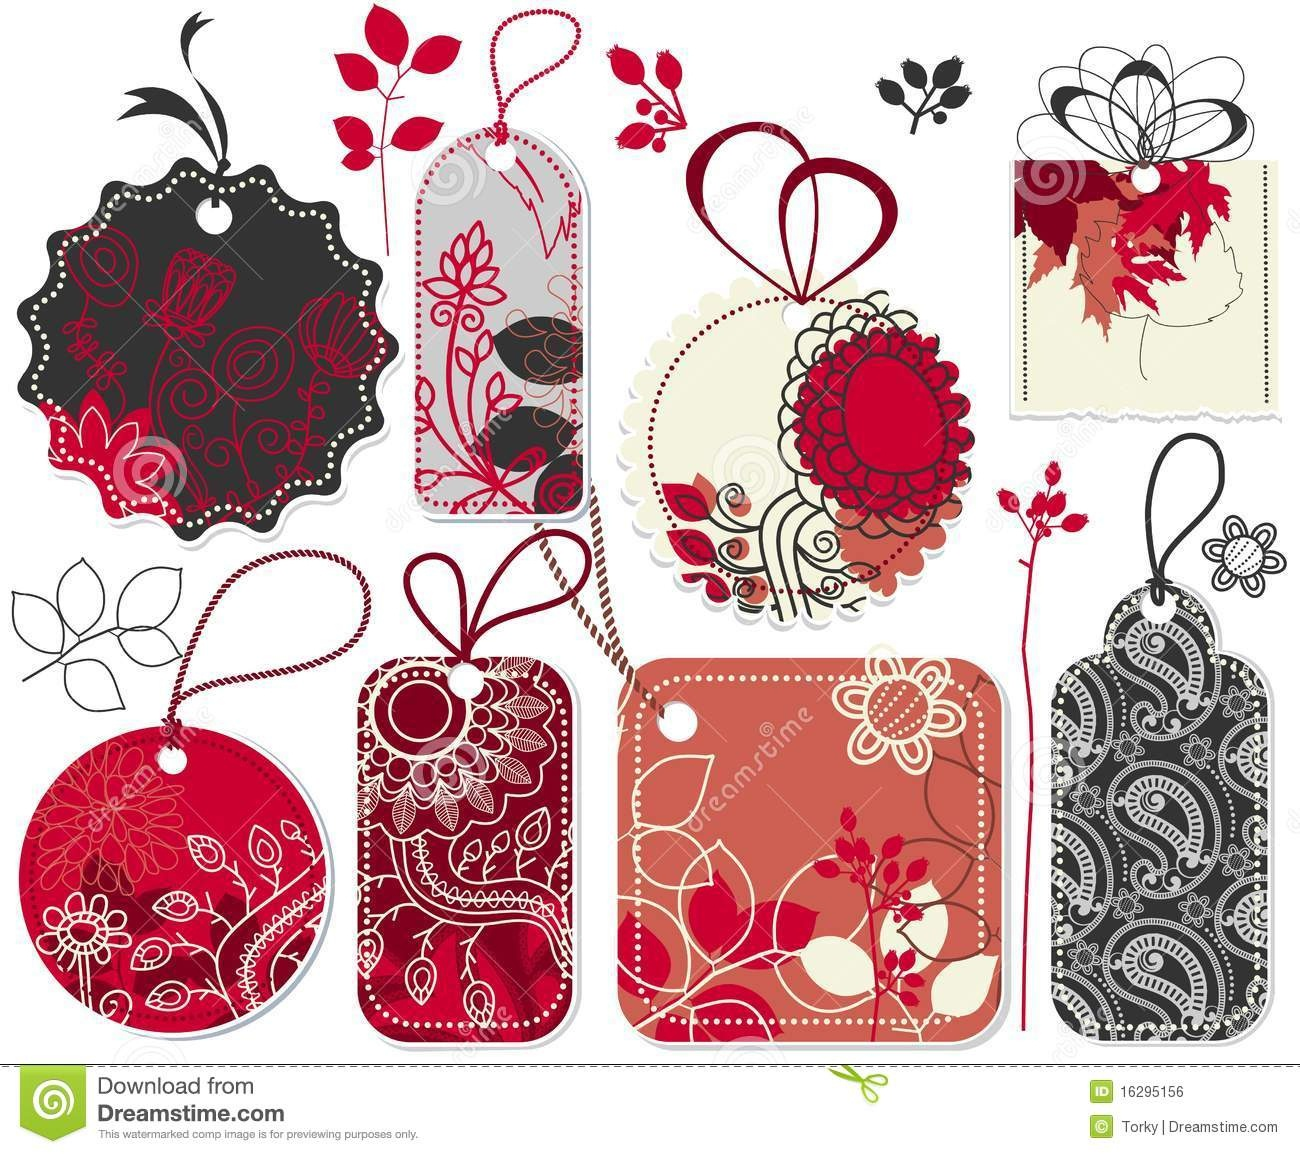 Cute Price Tags Stock Vector. Illustration Of Black, Paper - 16295156 - Free Printable Christmas Price Tags